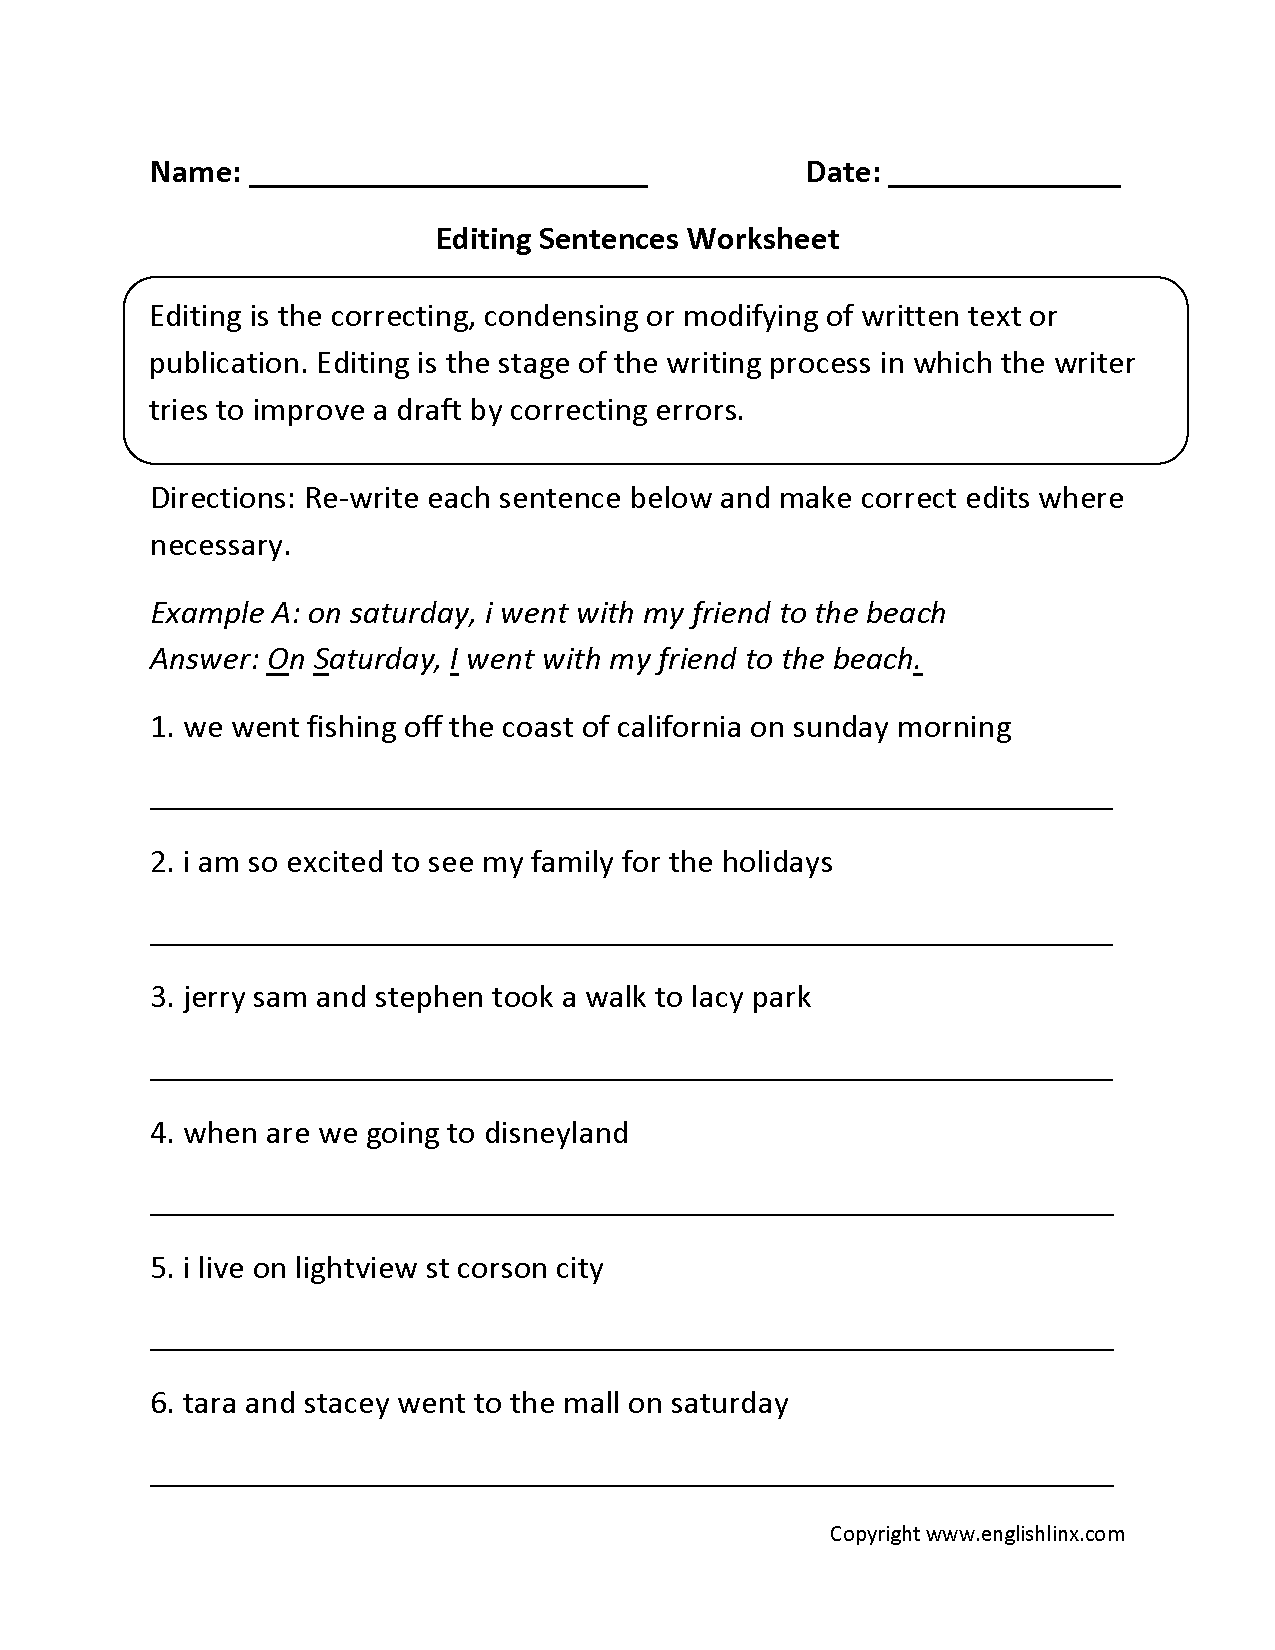 Writing Worksheets – Editing Worksheets